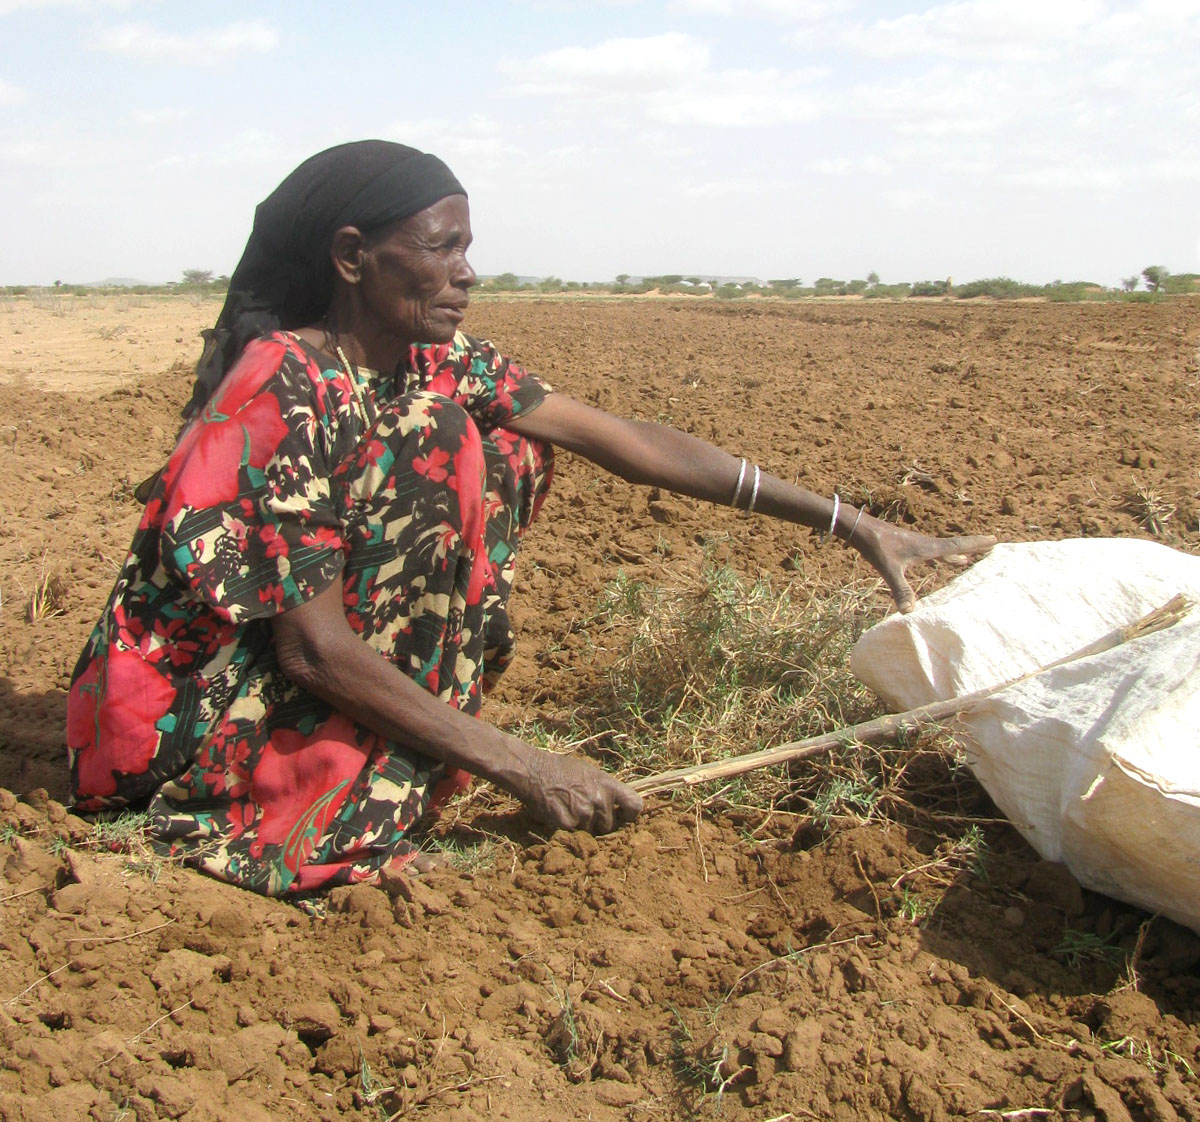 Severe drought has affected the villages in the south of Somaliland, particularly the Midwest regions and several farmers have lost their livestock